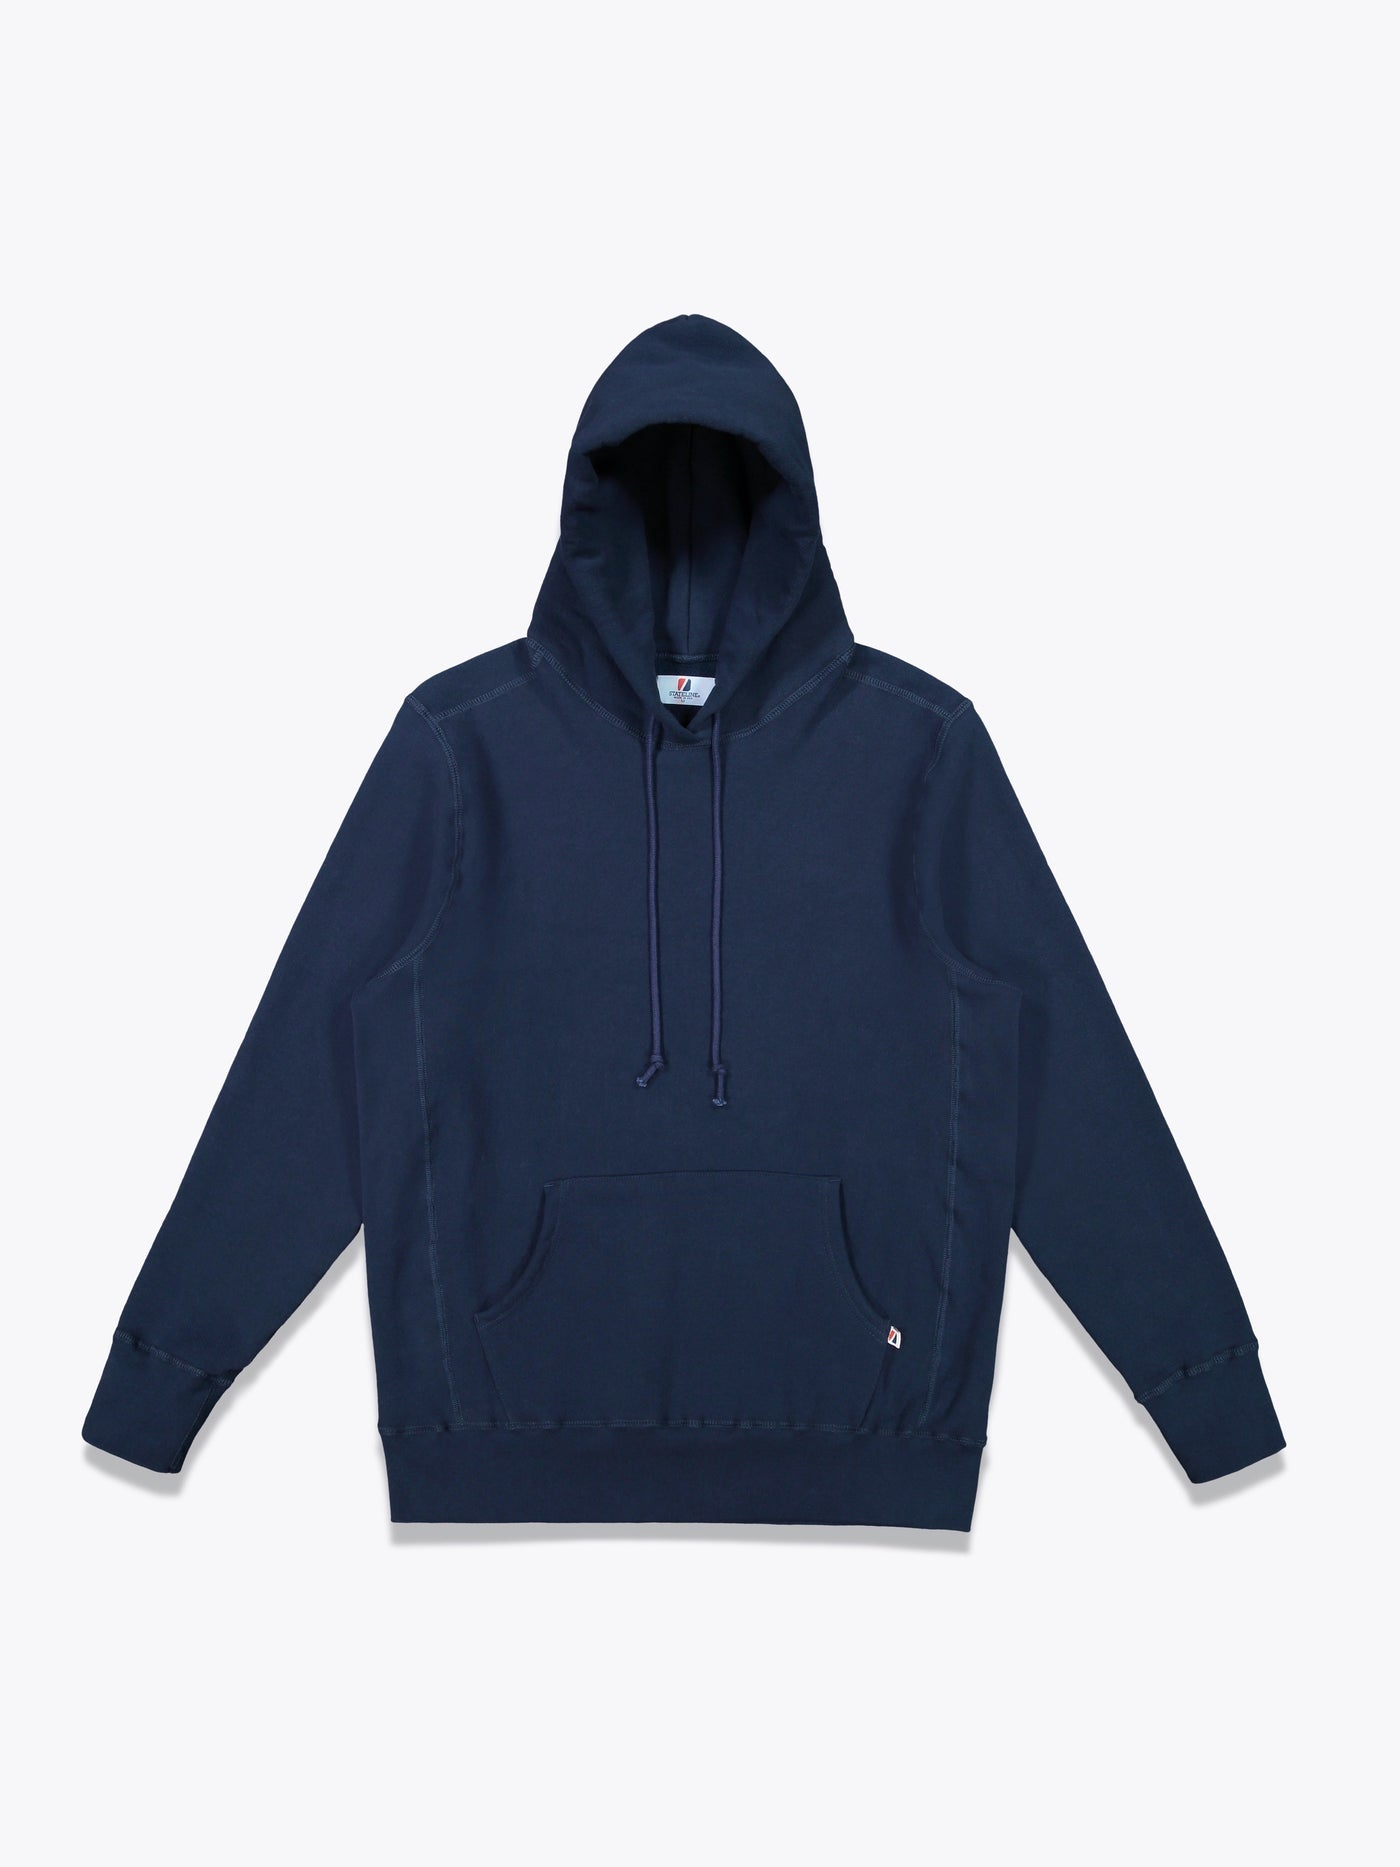 Athletic Fit Hoodie - Navy